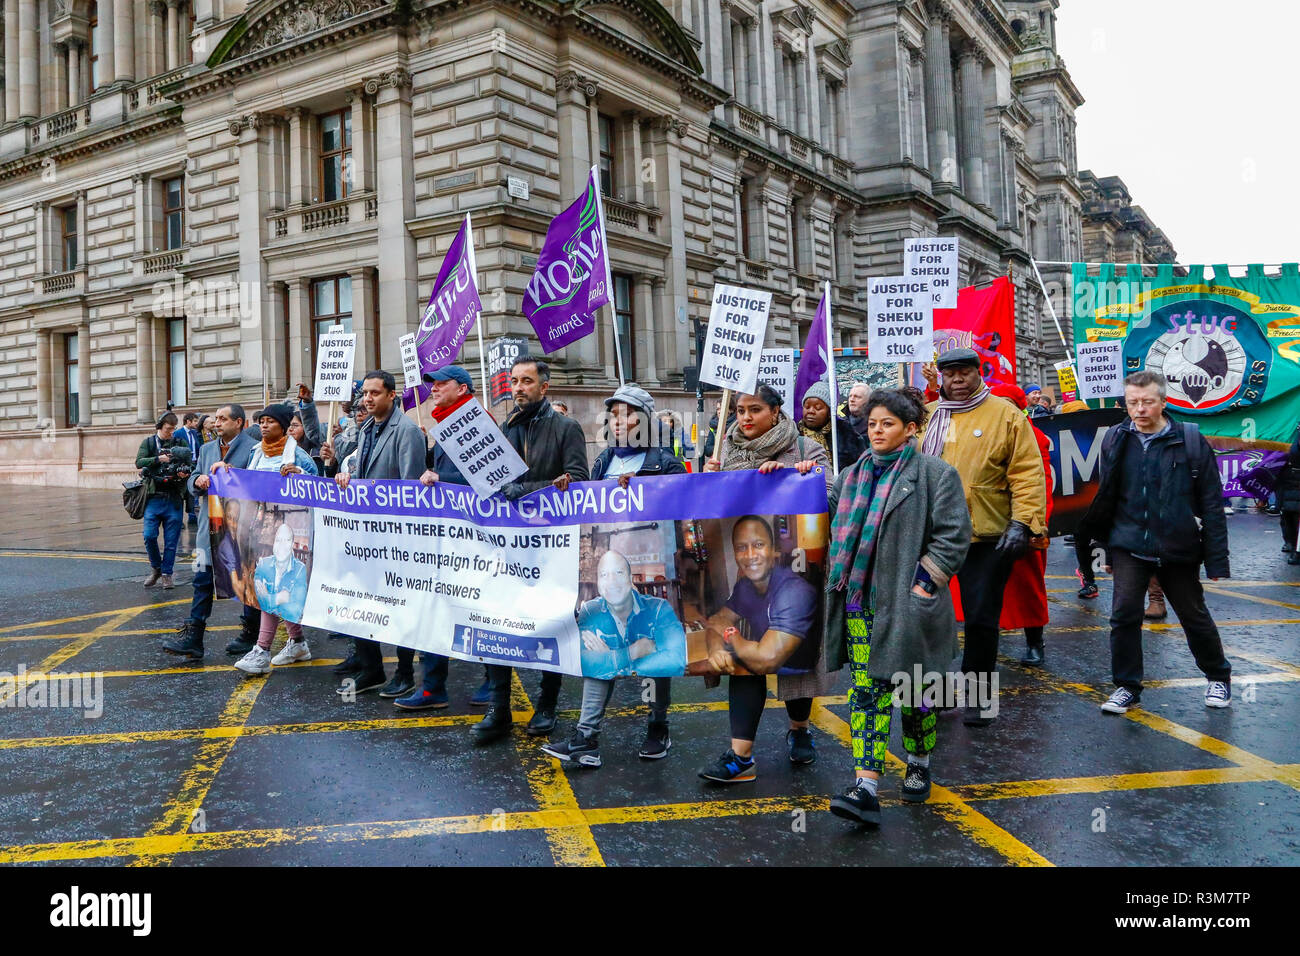 Glasgow, UK. 24th November 2018. More than 1000 STUC activists paraded through Glasgow city centre starting at Glasgow Green and finishing at STUC headquarters in Bath Street. The parade was led by leader of the Scottish Labour Party RICHARD LEONARD who was accompanied by Labour MSP ANAS SARWAR and AAMER ARWAR the lawyer representing the relatives of Sheku Bayoh, who died in police custody. The parade was also used as an anti-racism campaign. Credit: Findlay/Alamy Live News - Stock Image